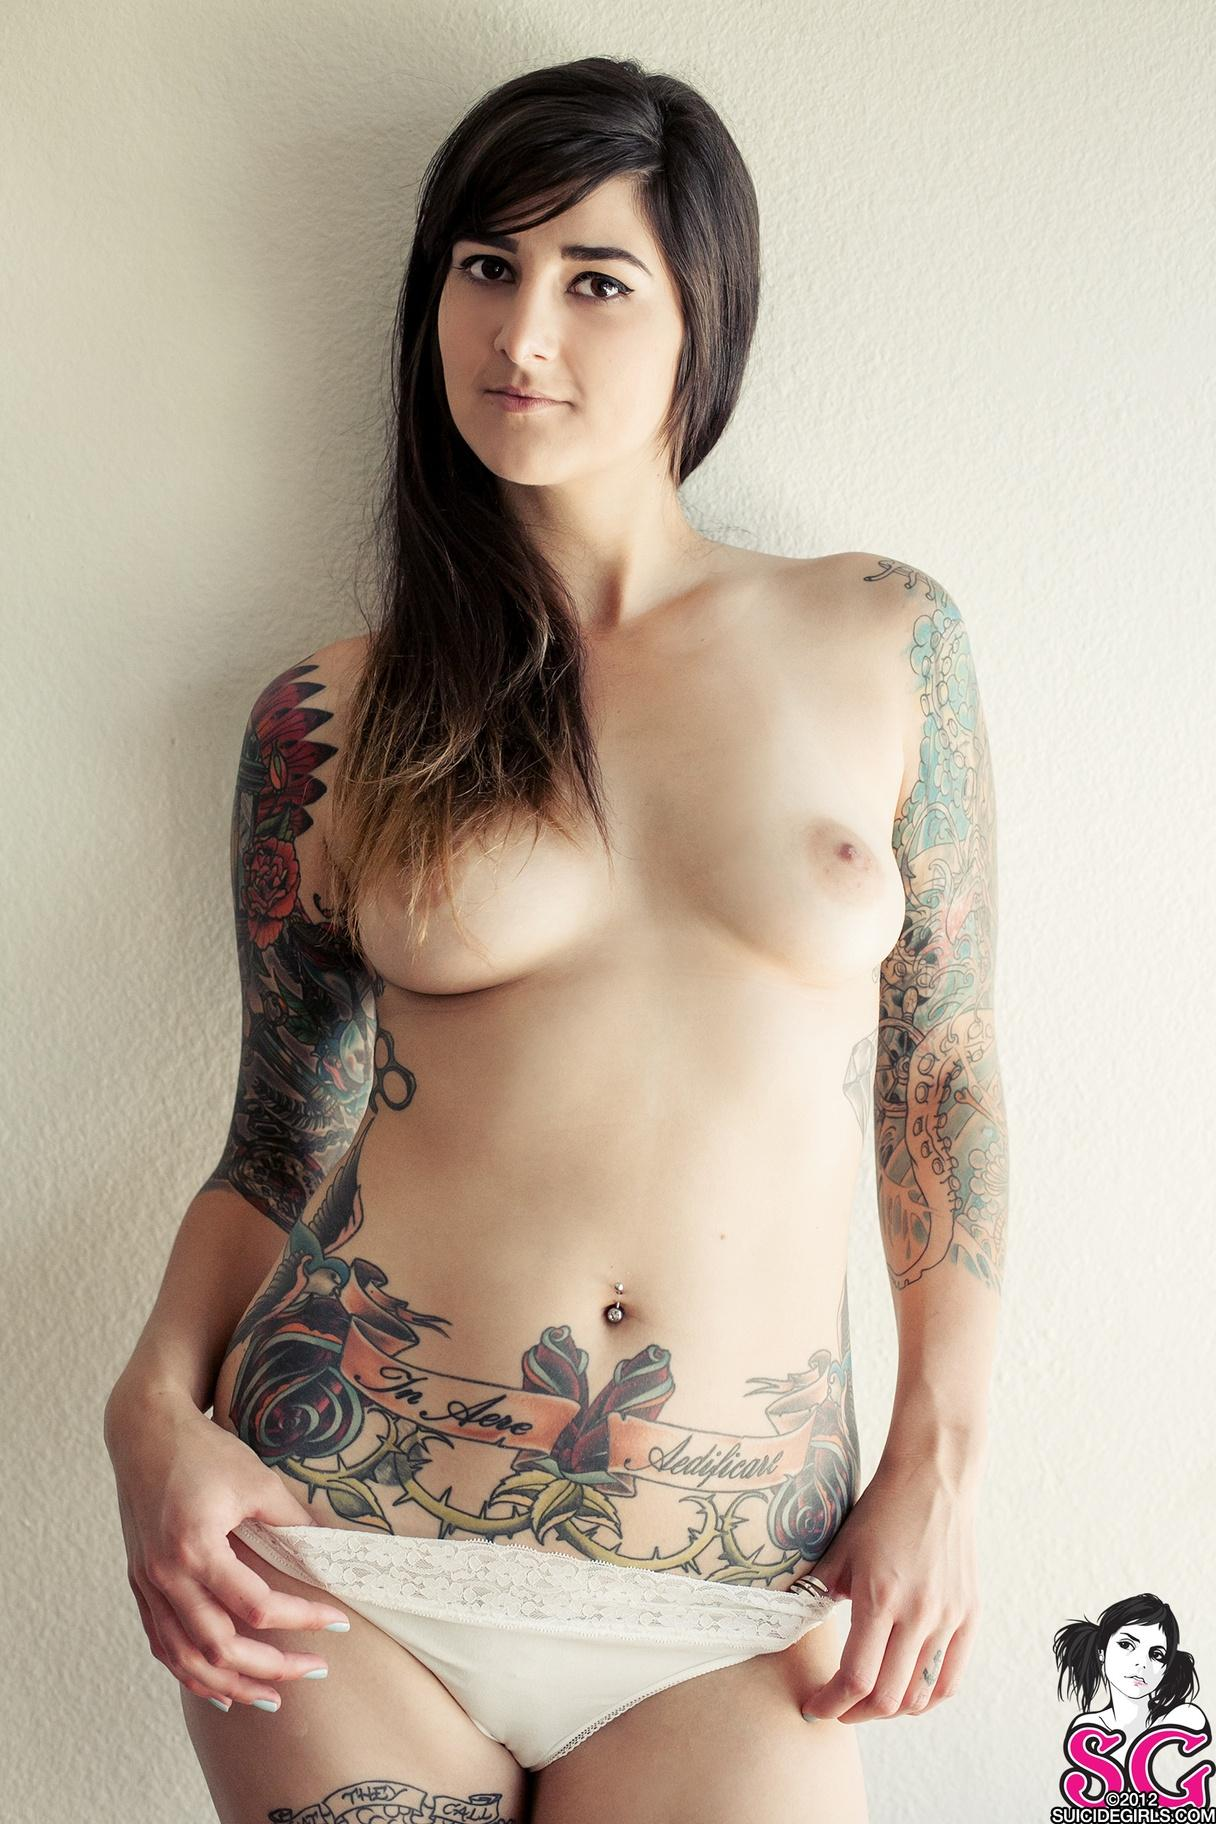 Nsfw Photo Album Sexy Stomach Tattoos  Suicidegirls-4817